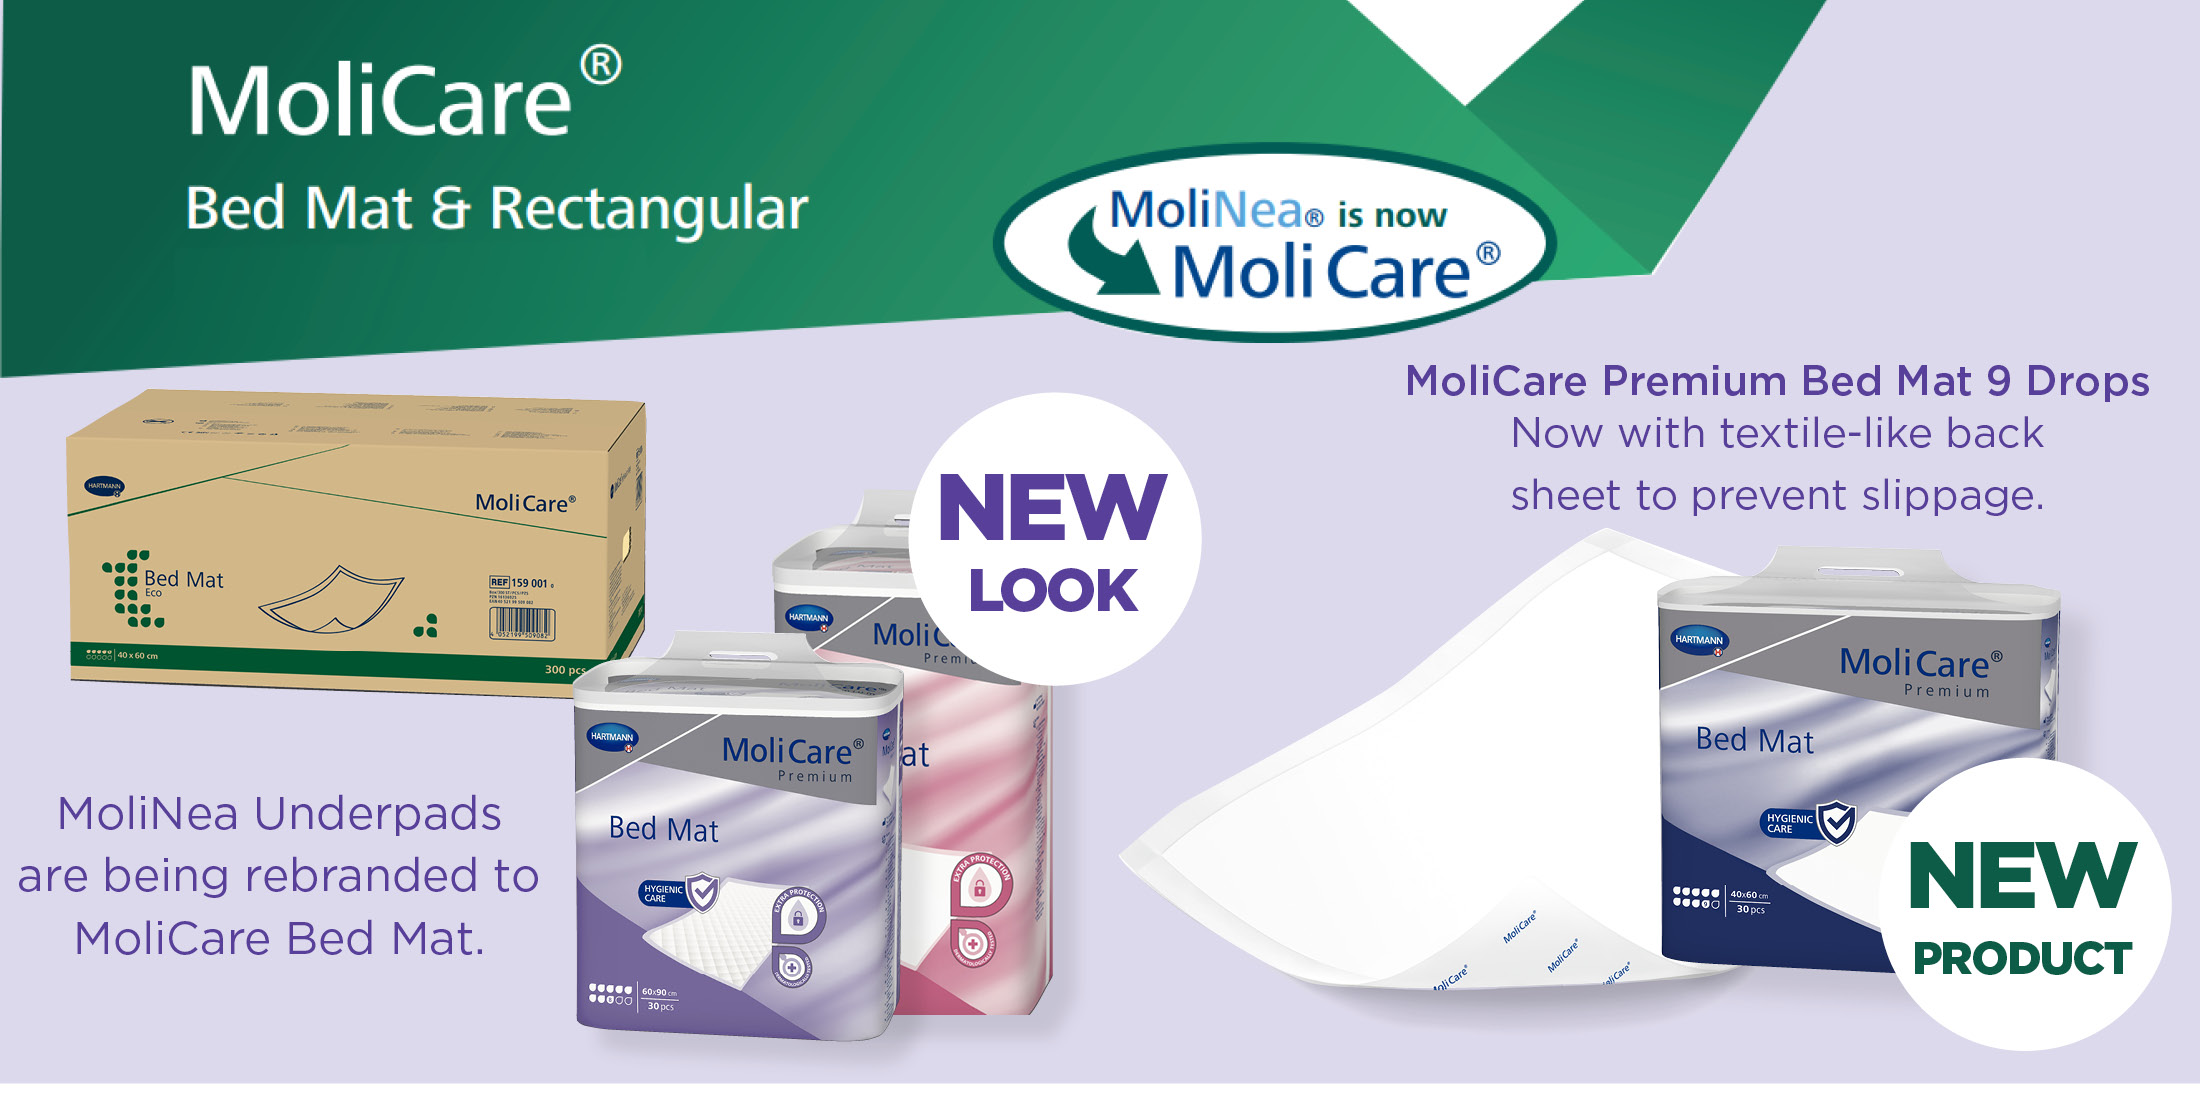 MoliCare bed mats